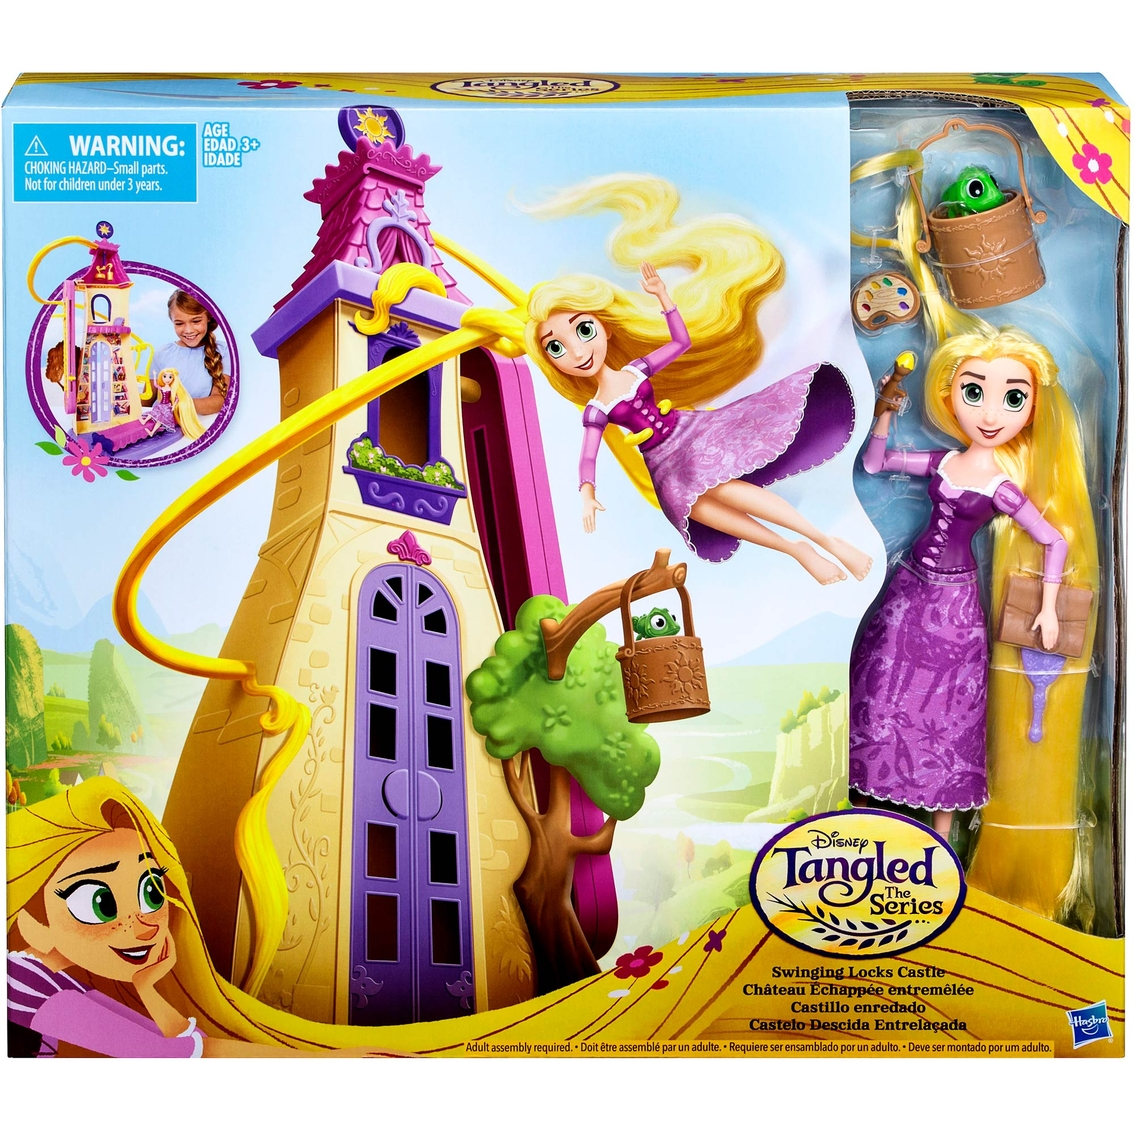 Disney Tangled The Series Swinging Locks Castle With Rapunzel Figure Dolls Baby Toys Shop The Exchange